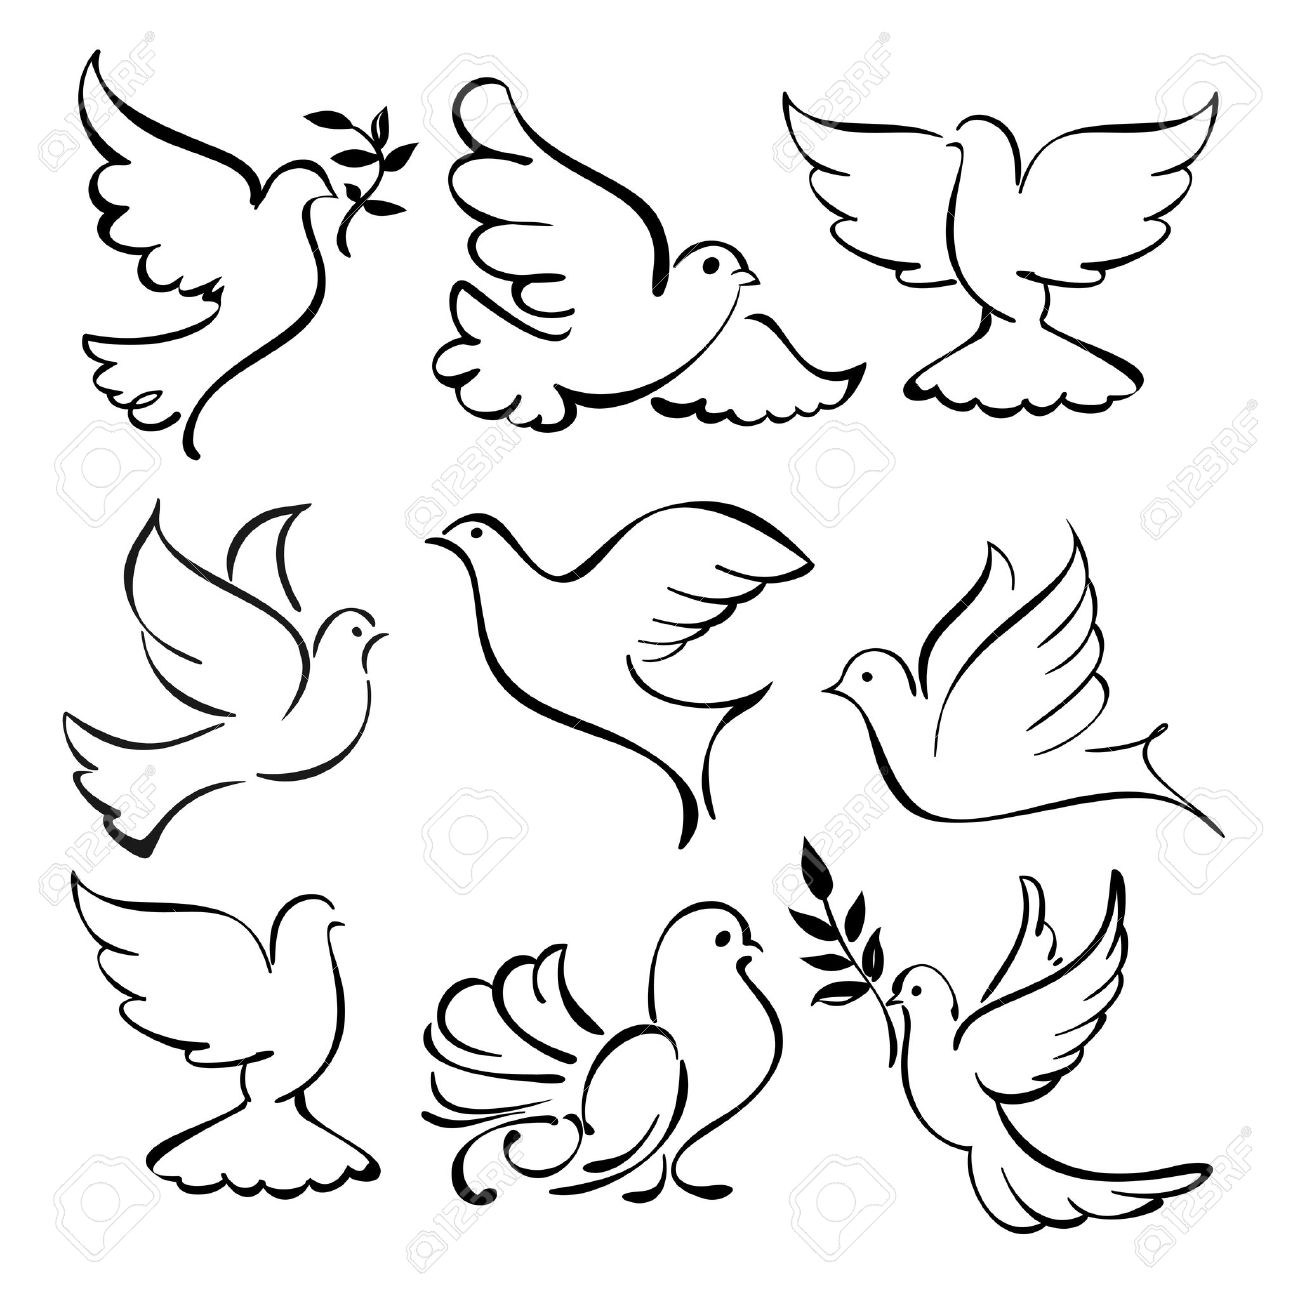 Fly Cartoon Drawing Vector Flying Dove Sketch